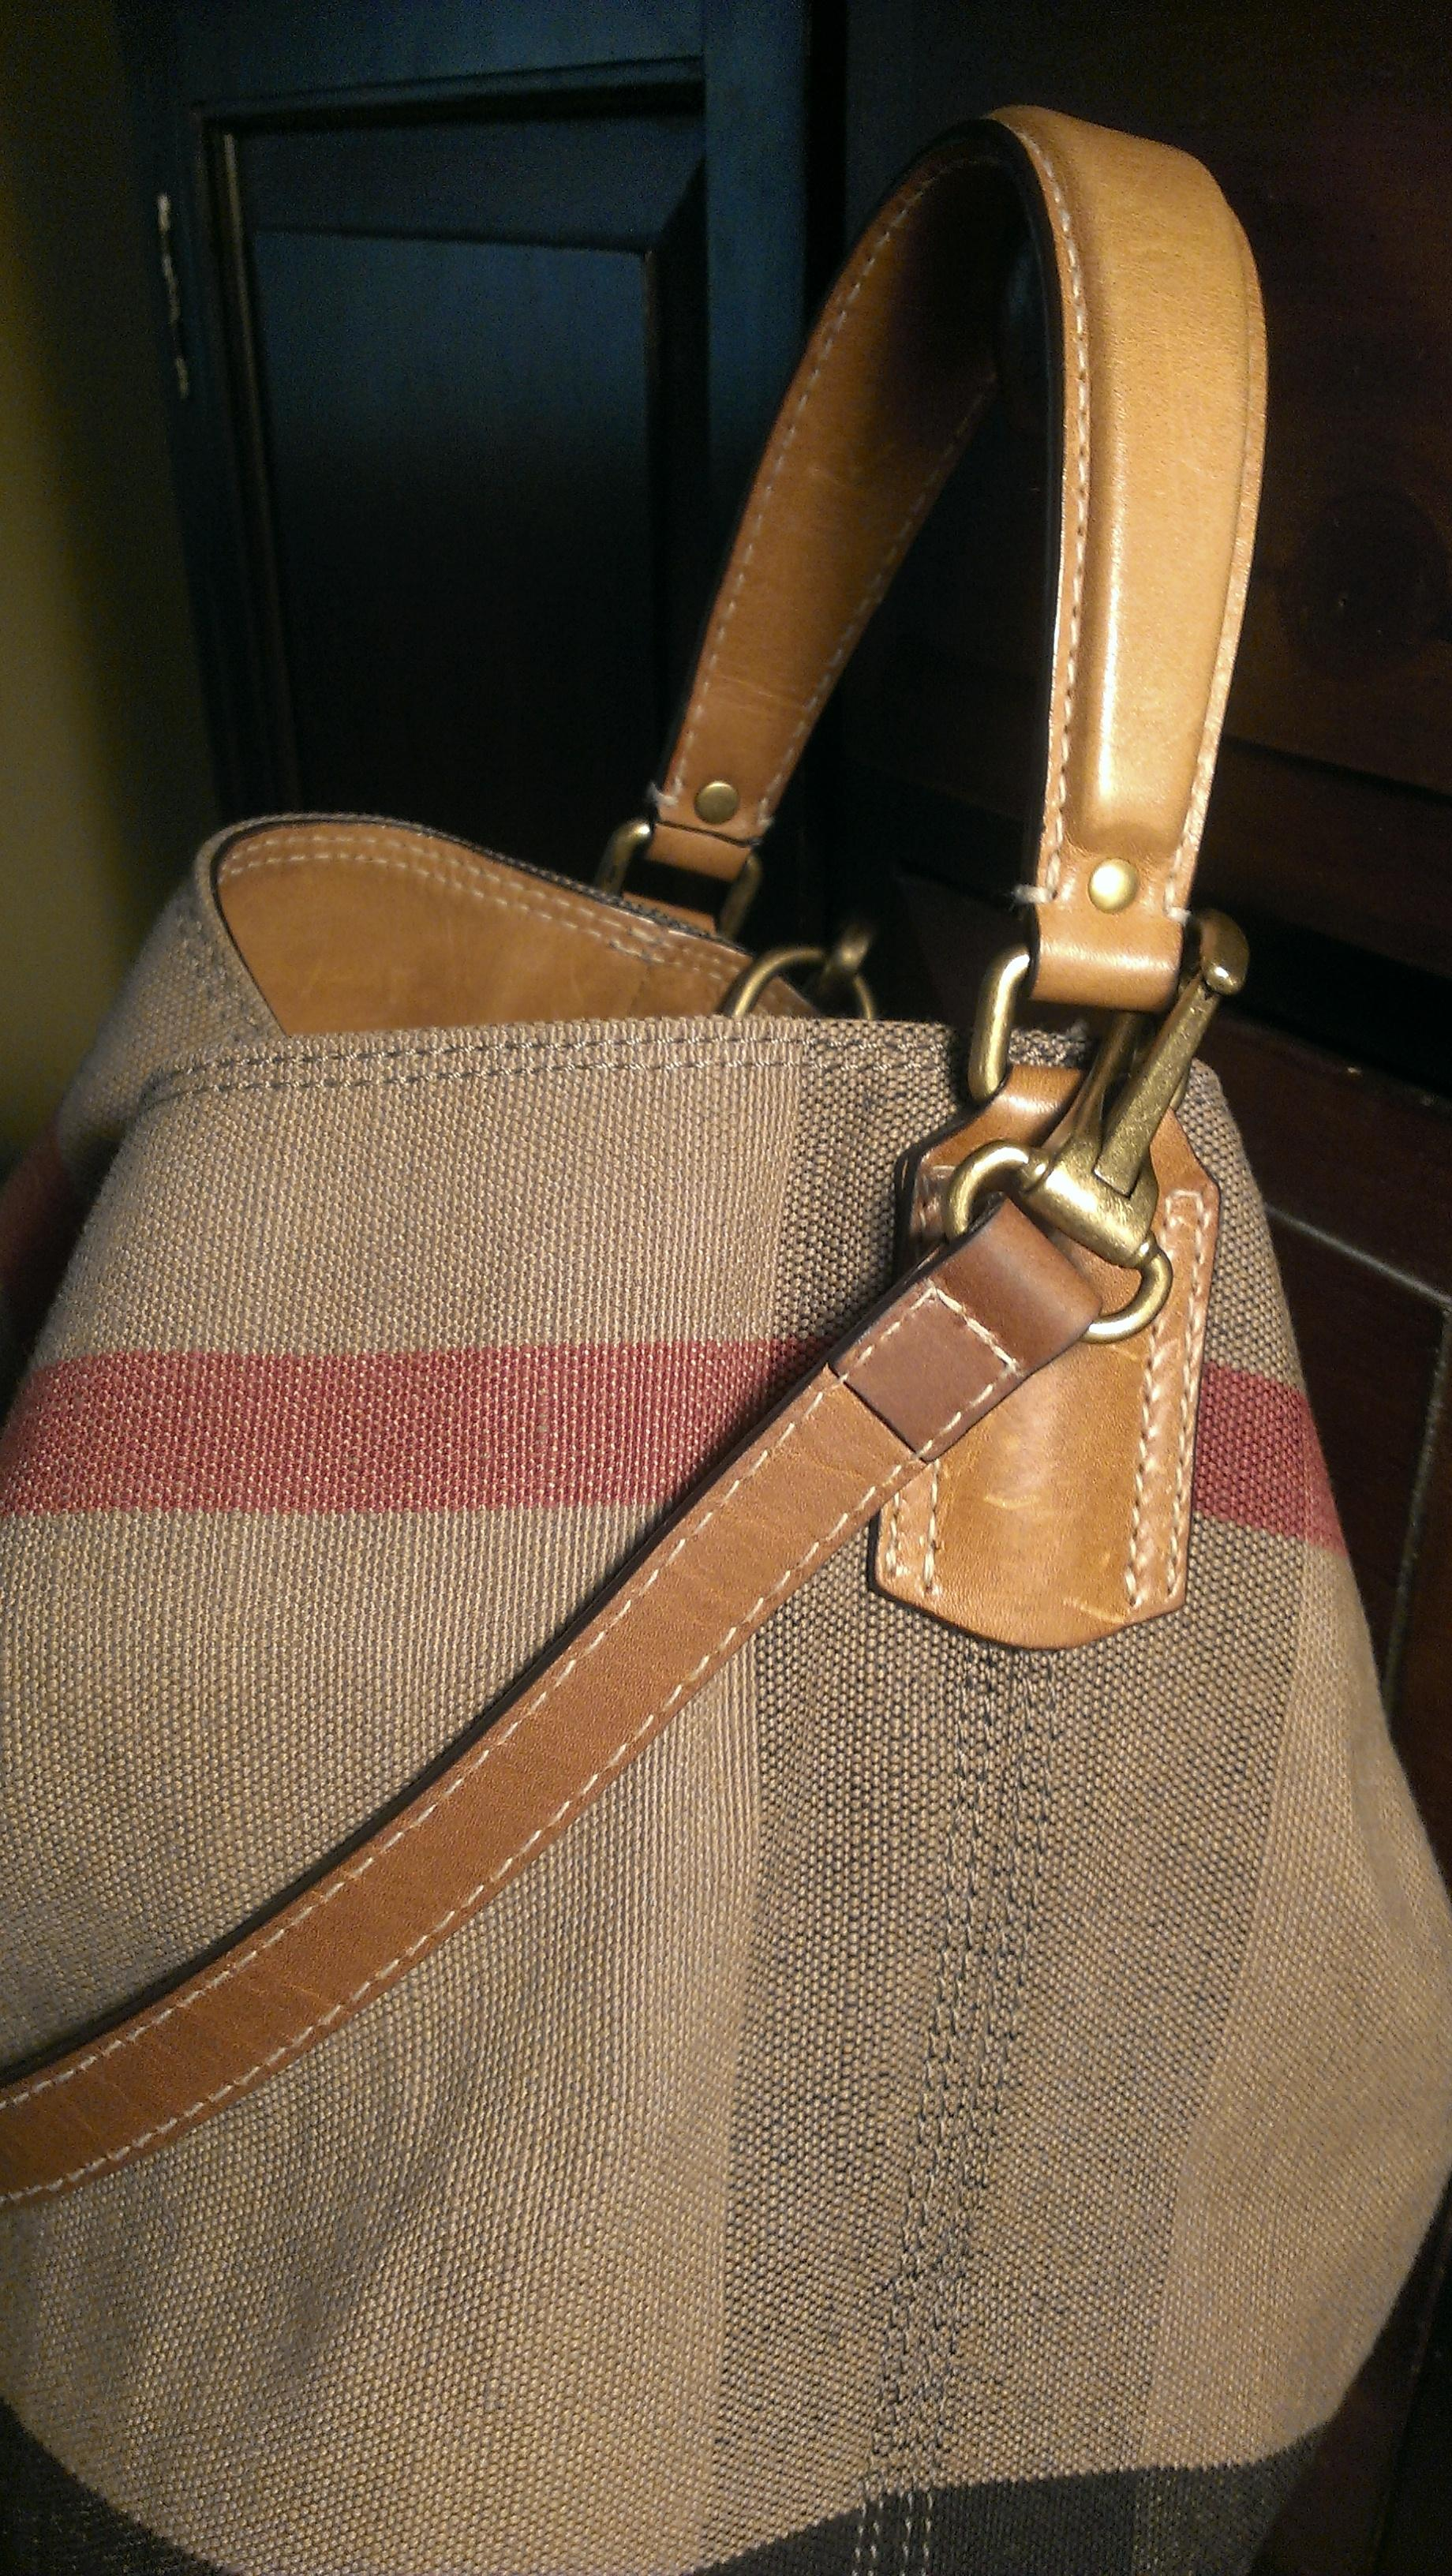 cheap Burberry . A Very Popular In The Colors. Leather Handles ...